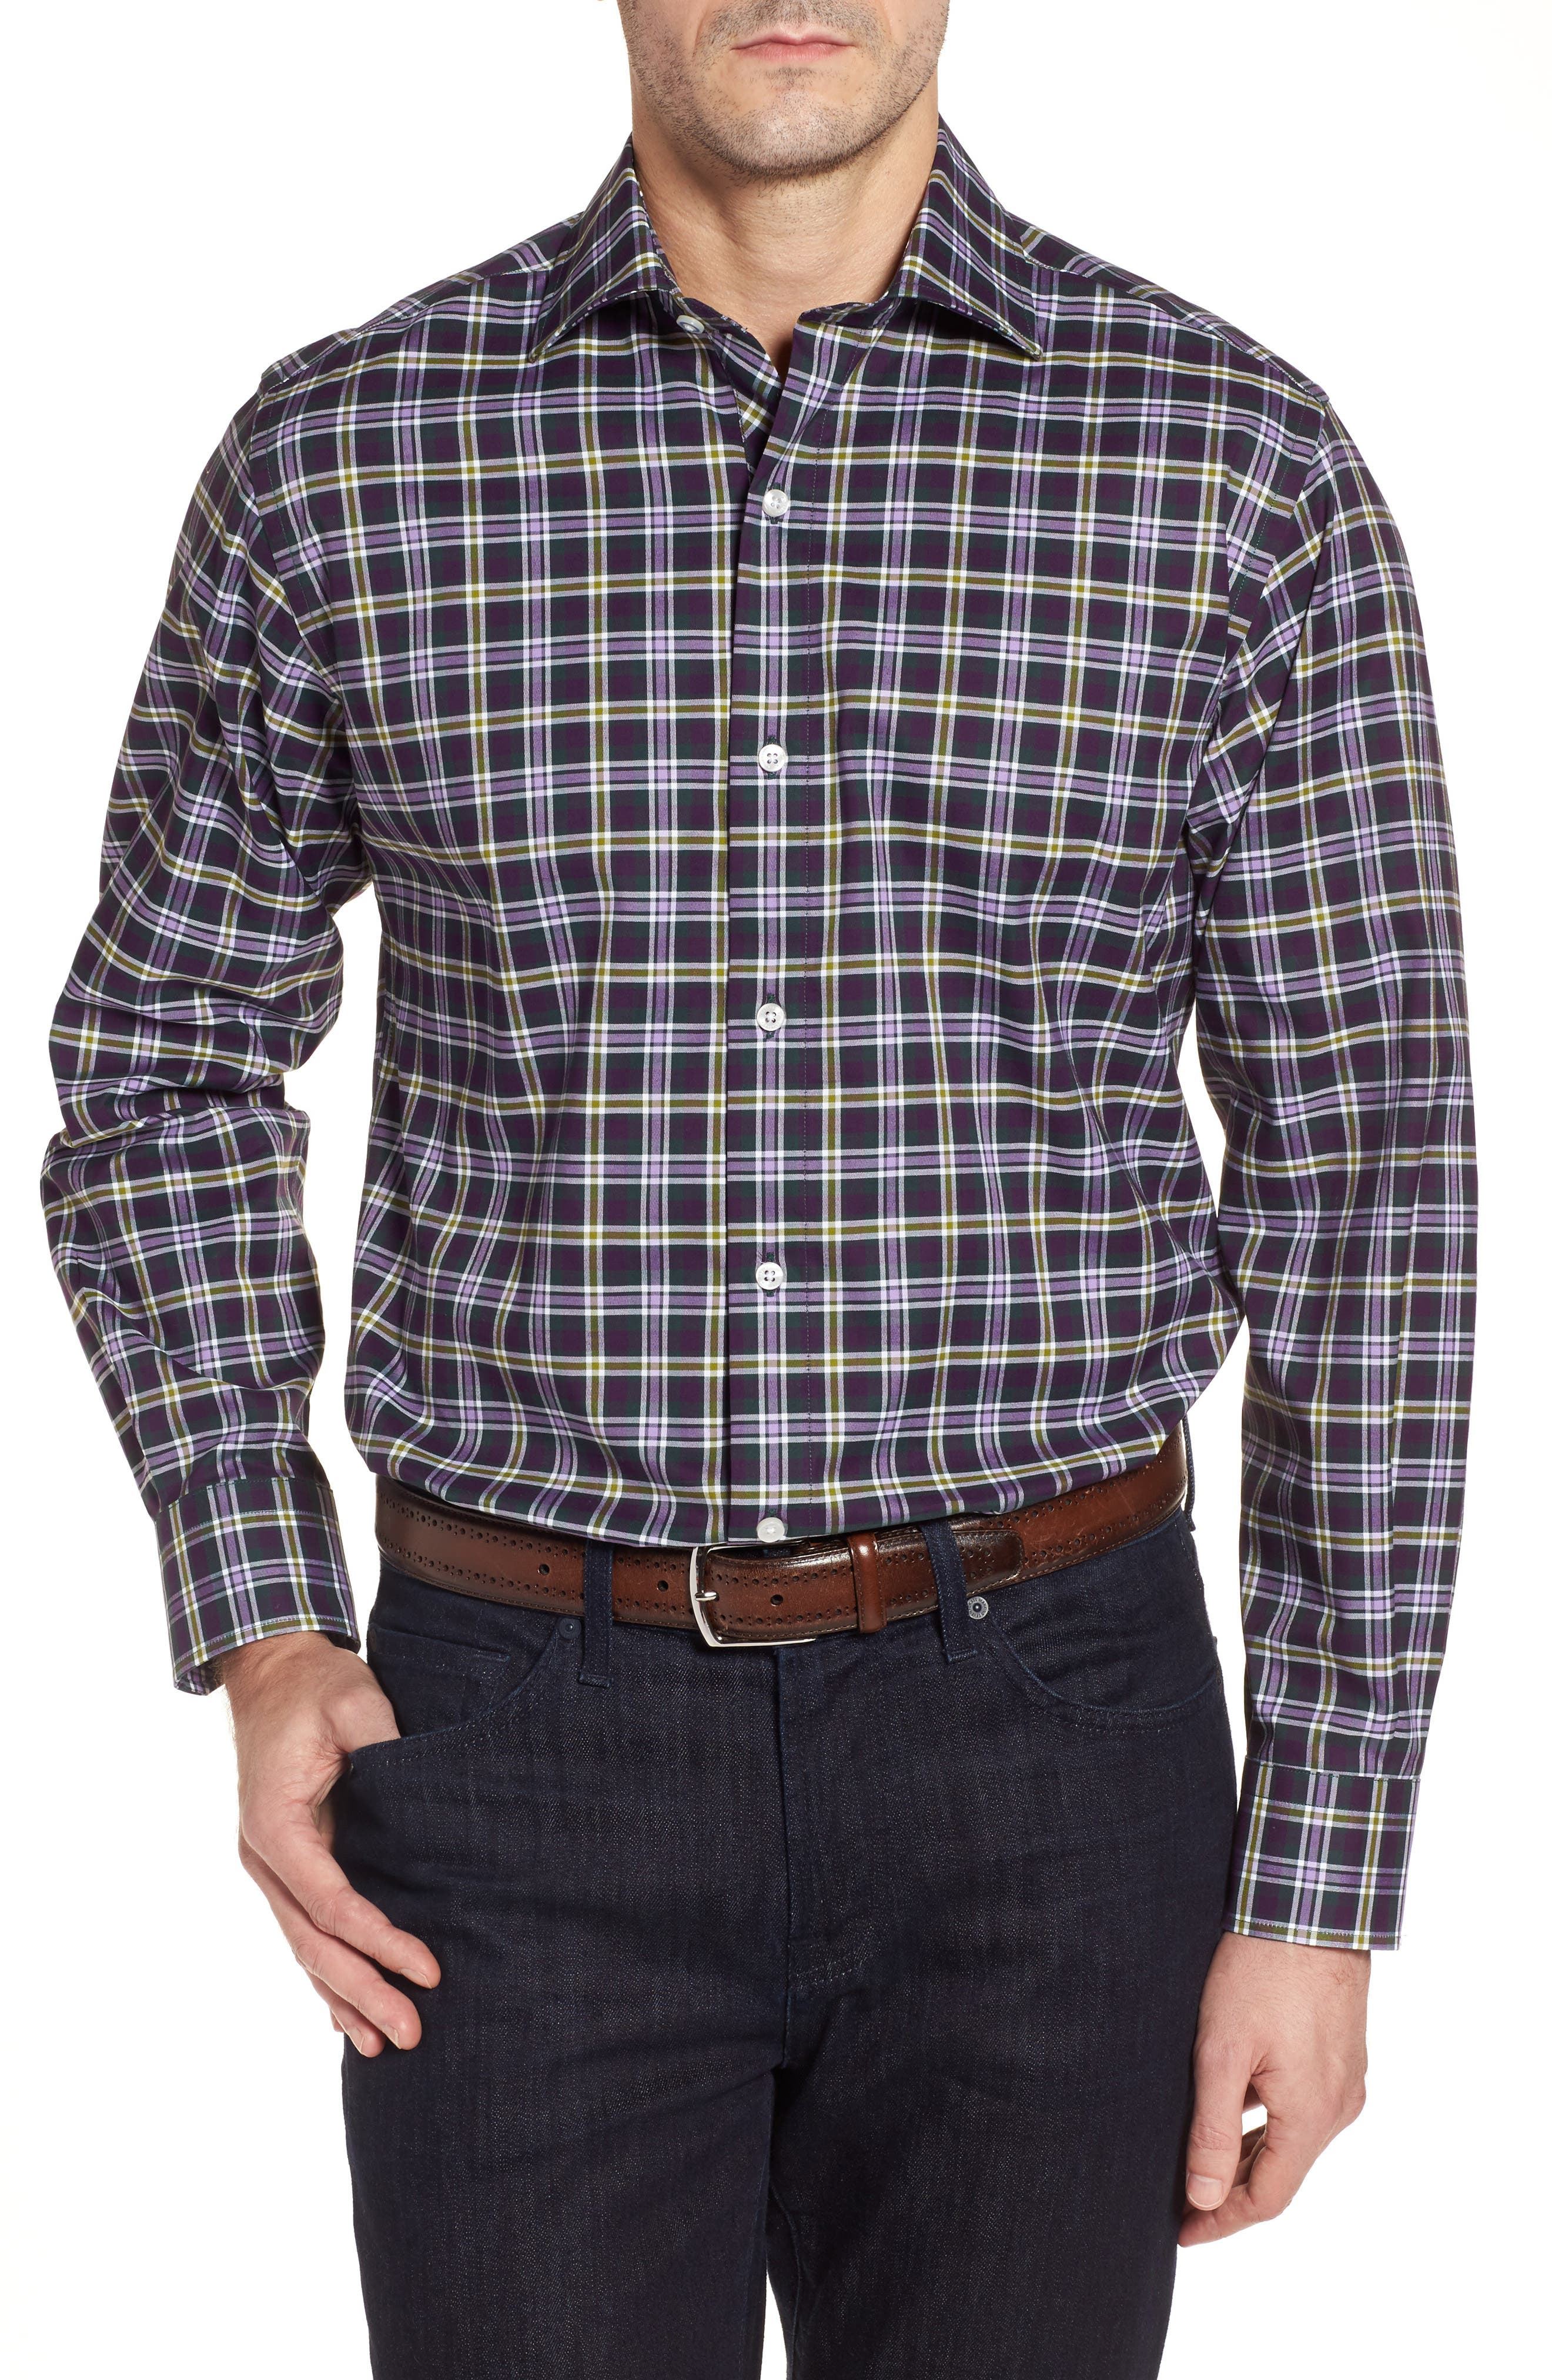 Alternate Image 1 Selected - TailorByrd Calhoun Regular Fit Check Sport Shirt